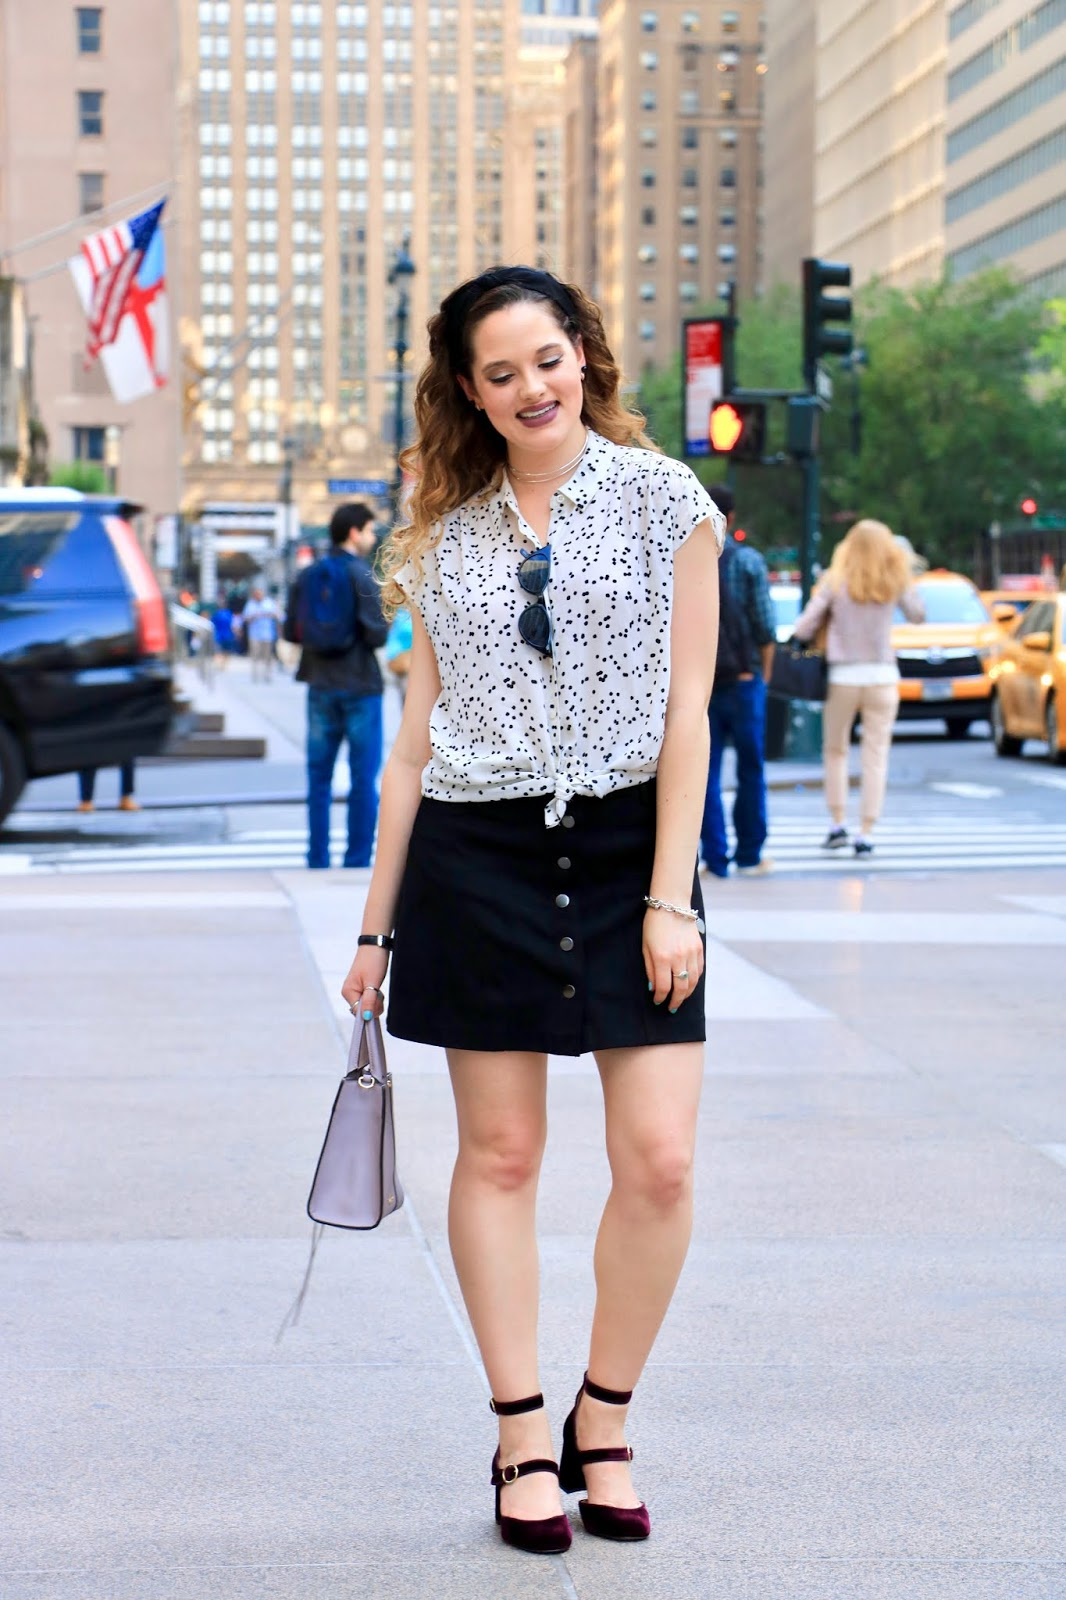 Nyc fashion blogger Kathleen Harper showing how to wear a black mini skirt